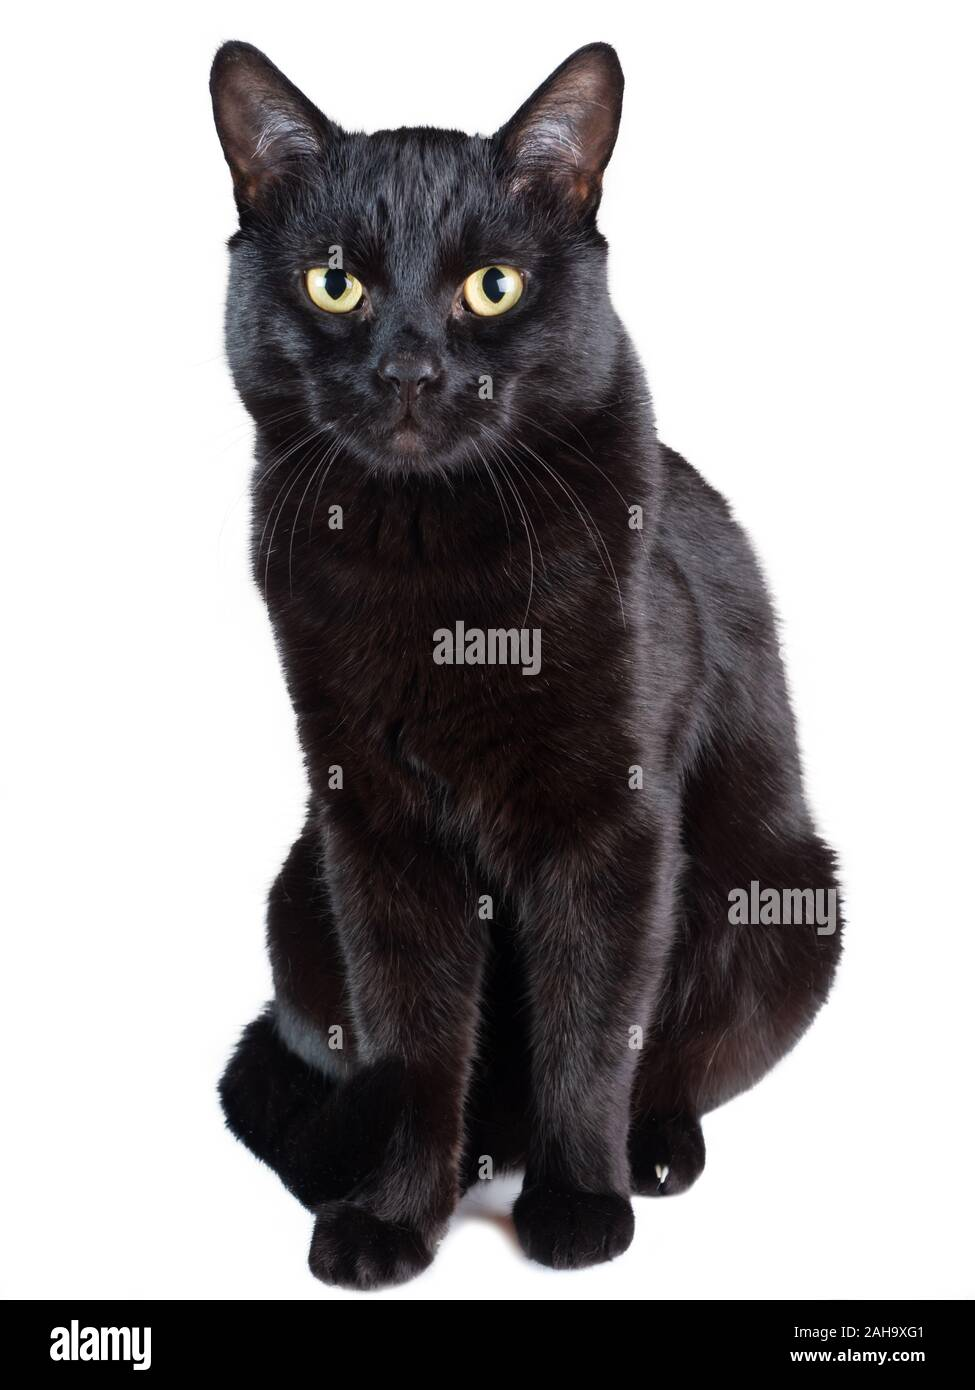 View Of A Black Cat In Front Of A White Backgroundblack Cat Sitting Isolated On A White Background Stock Photo Alamy